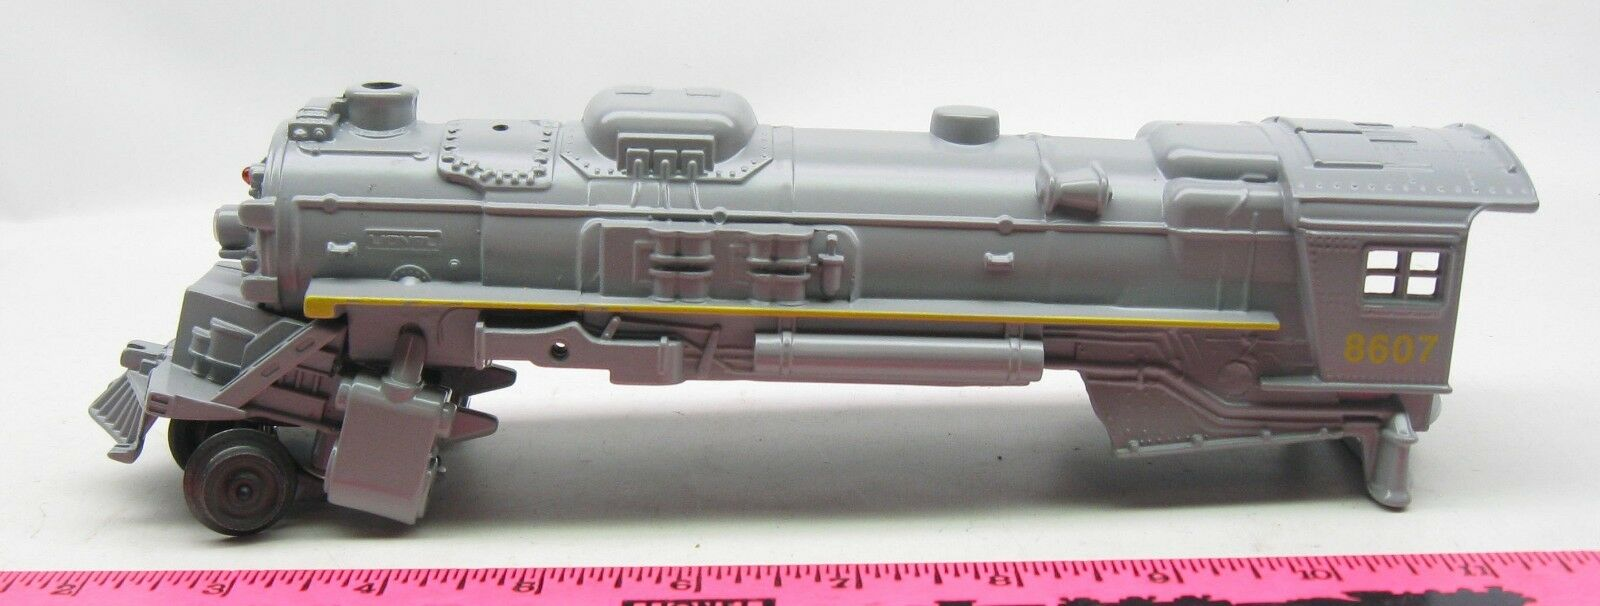 Lionel shell  8607 Union Pacific Steam Locomotive Shell with chest